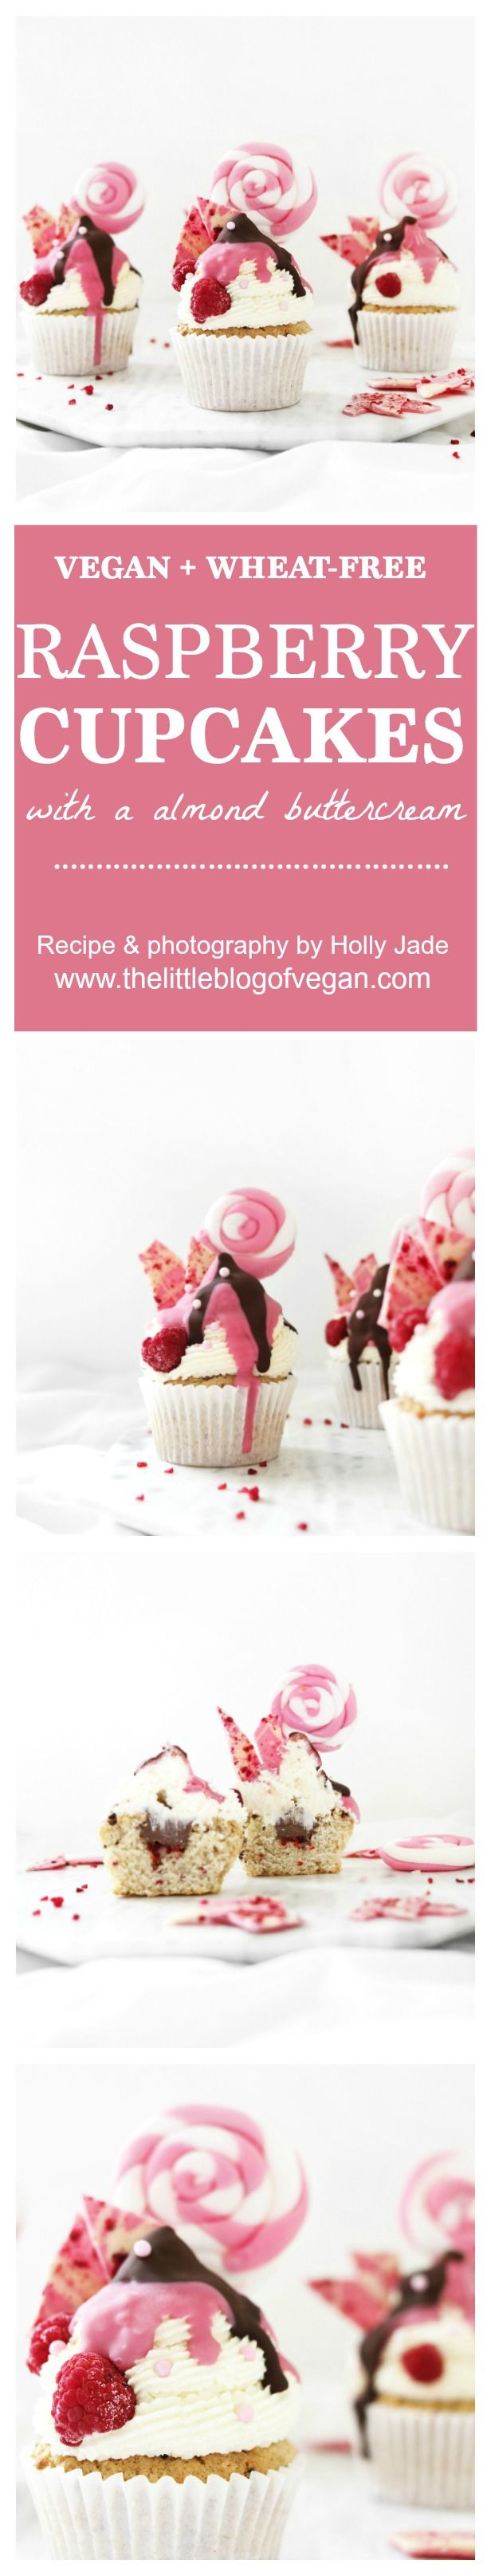 1349 best Cakey Wakey images on Pinterest